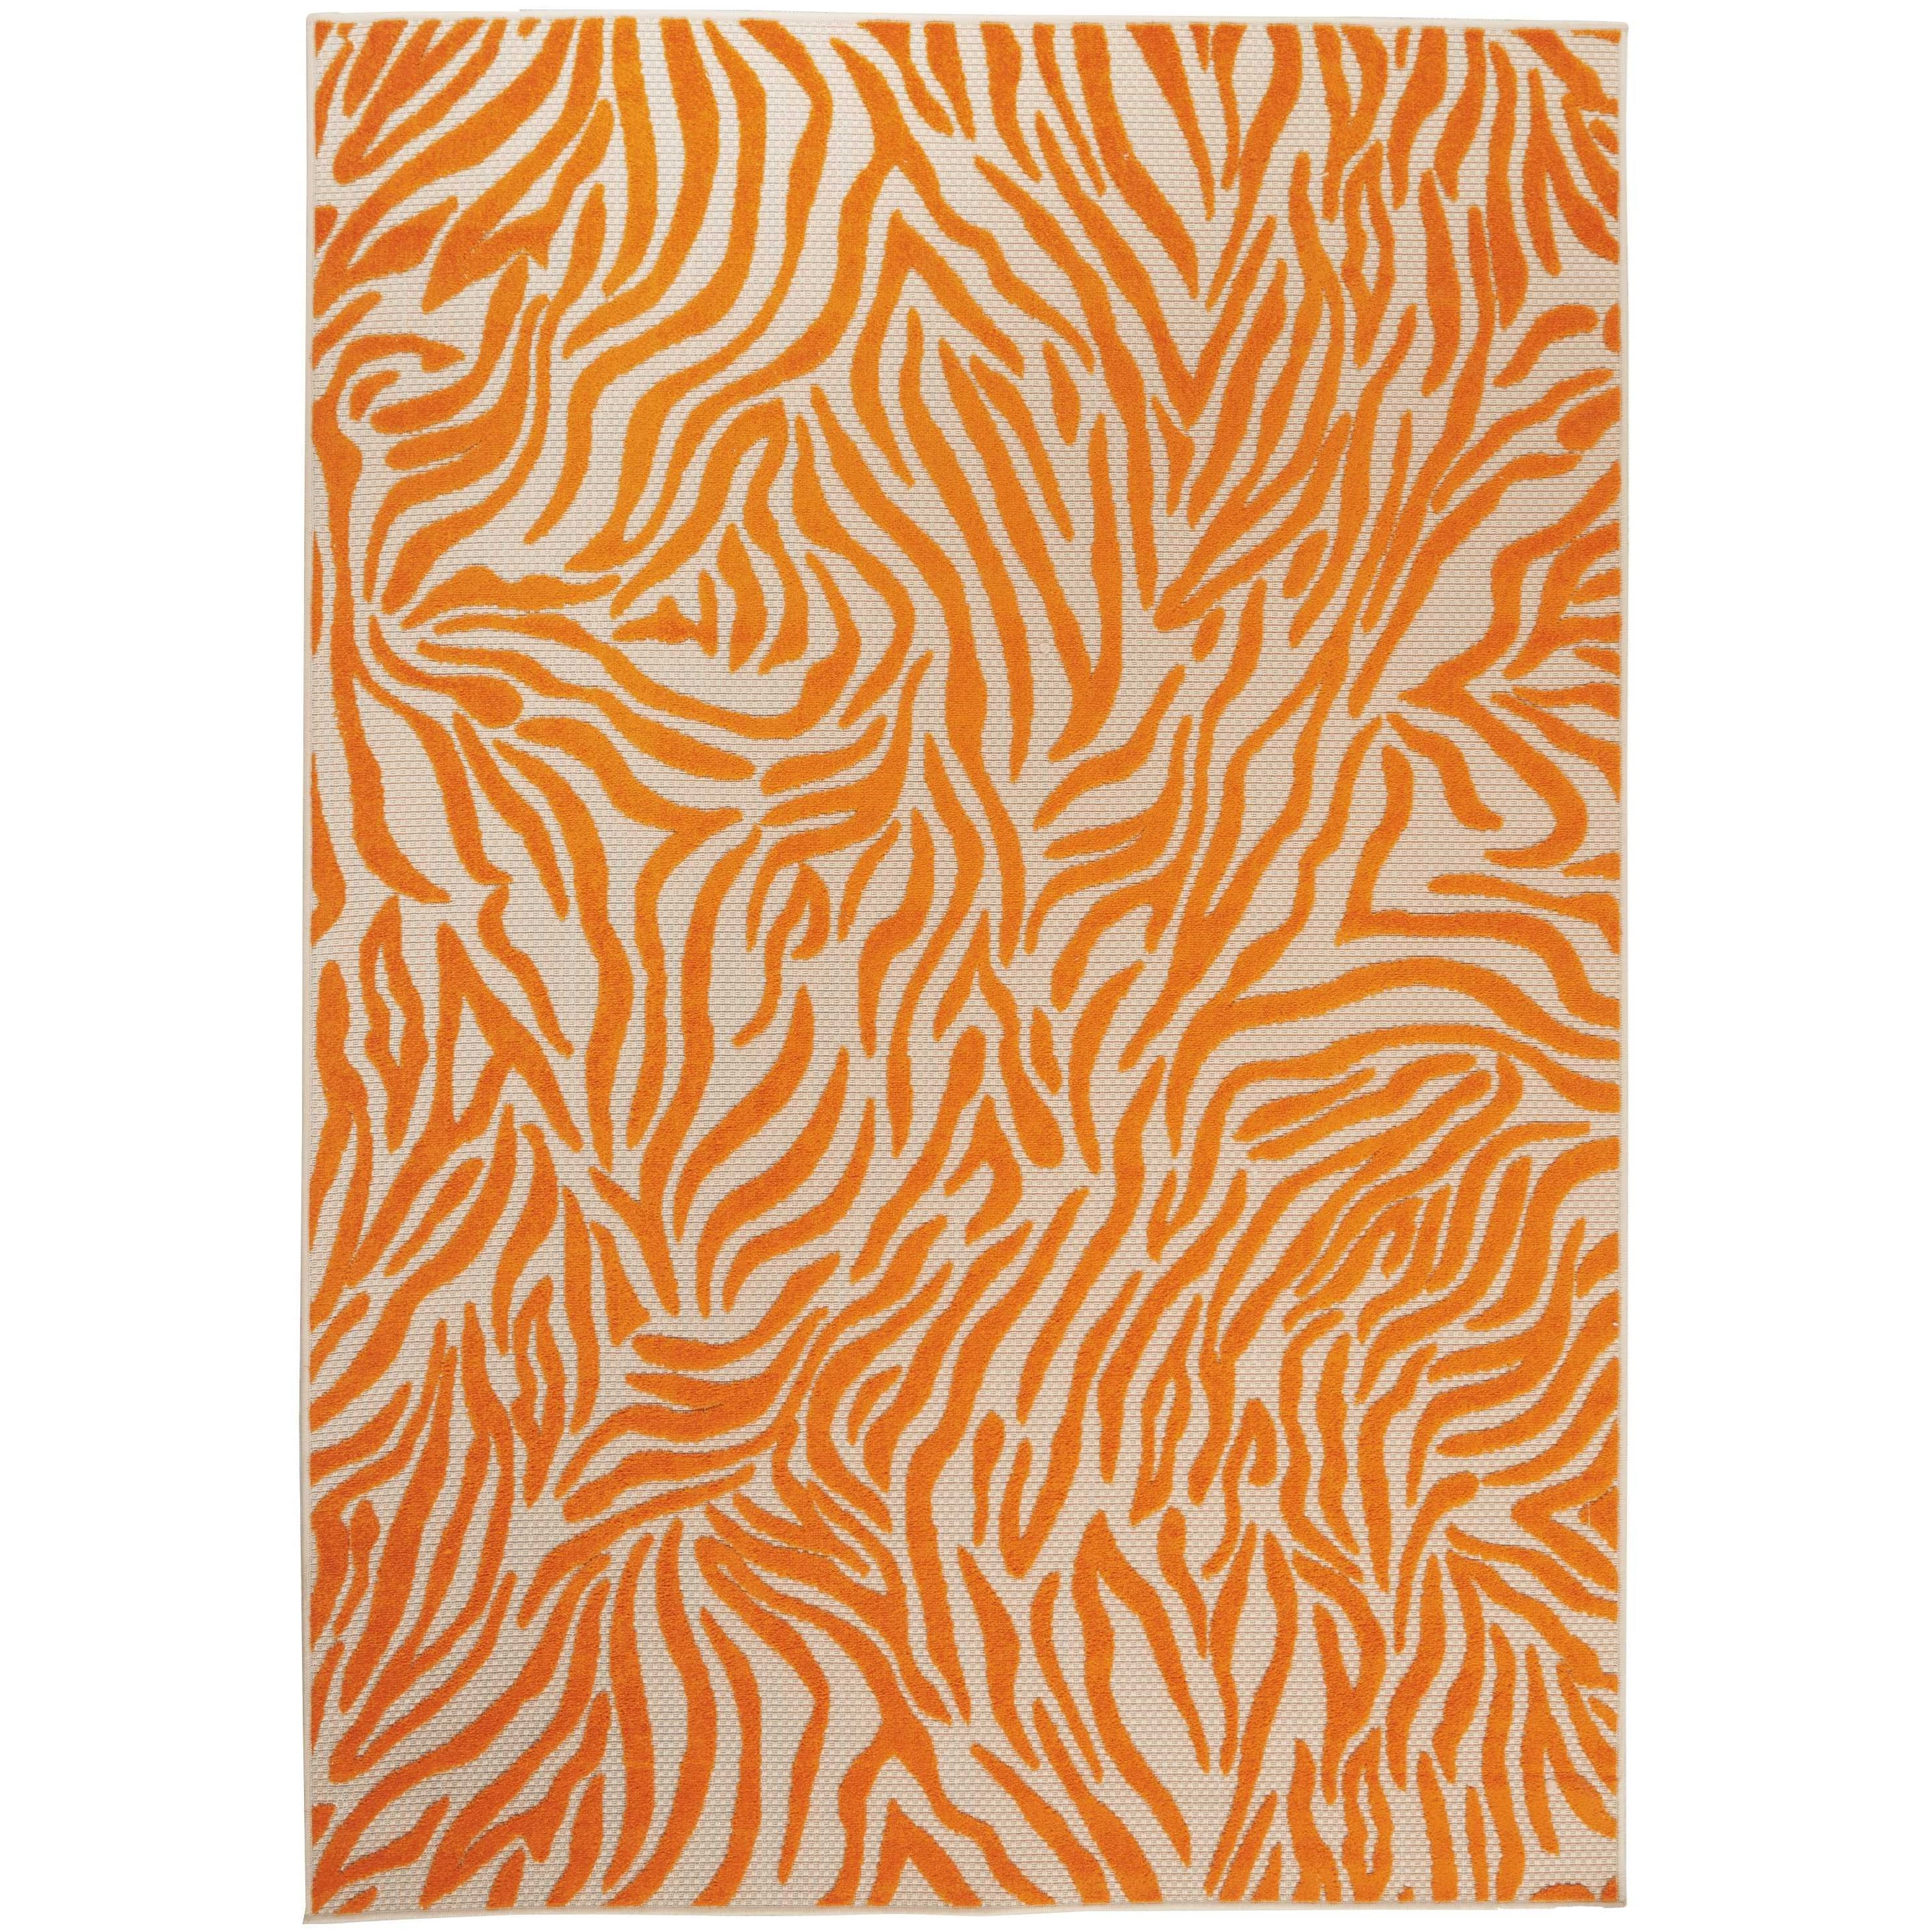 "Aloha 3'6"" x 5'6"" Orange Rectangle Rug by Nourison at Sprintz Furniture"